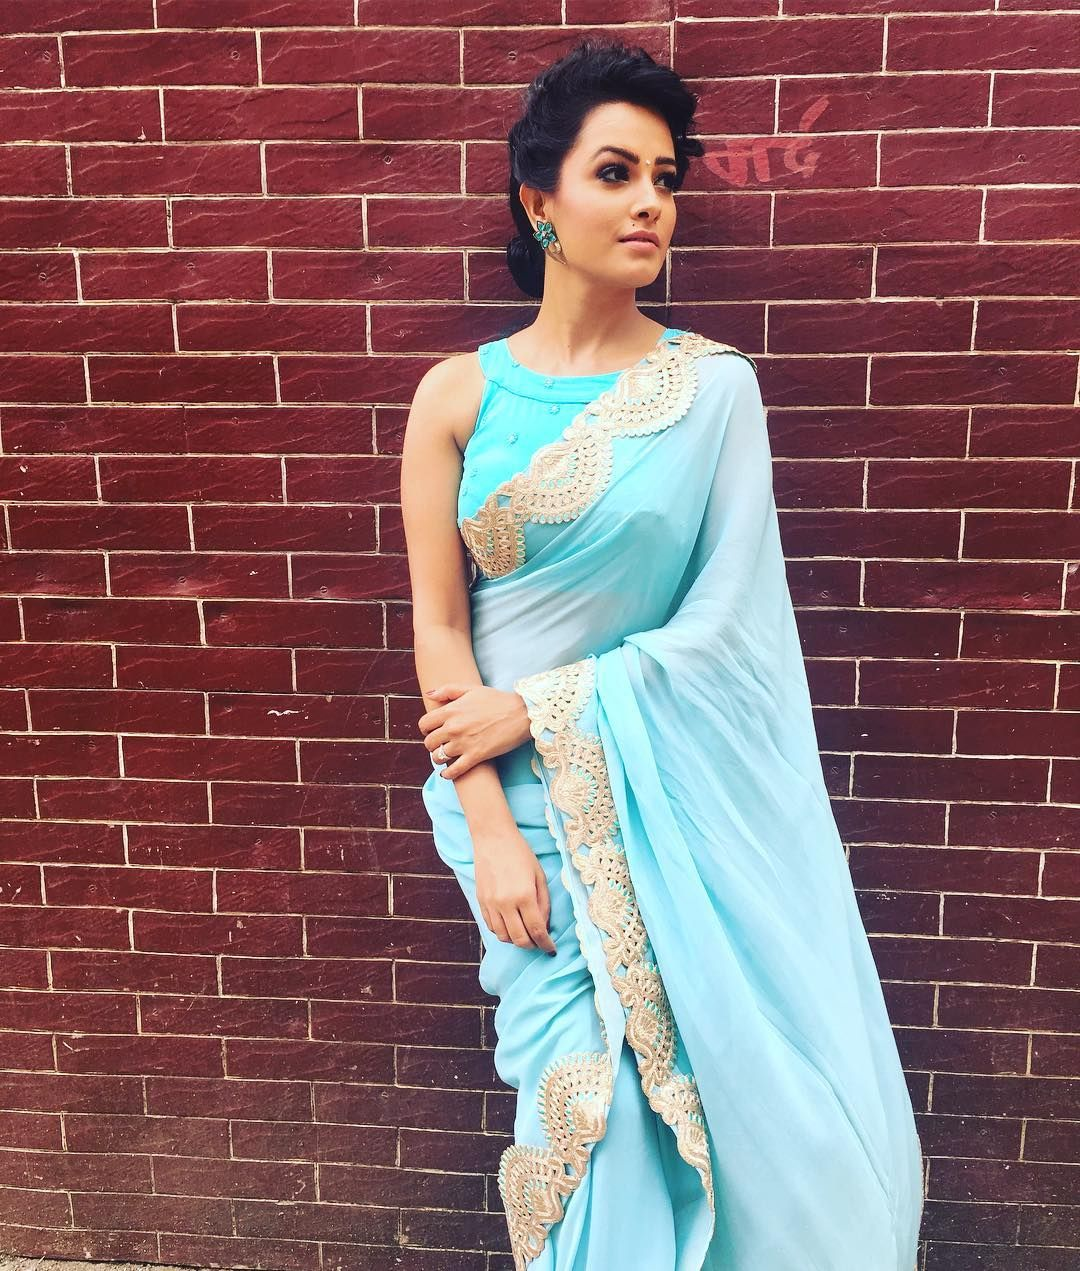 49bb29b2b45a29 40+ Stylish Blouse Designs That You Can Wear With Any Saree ...